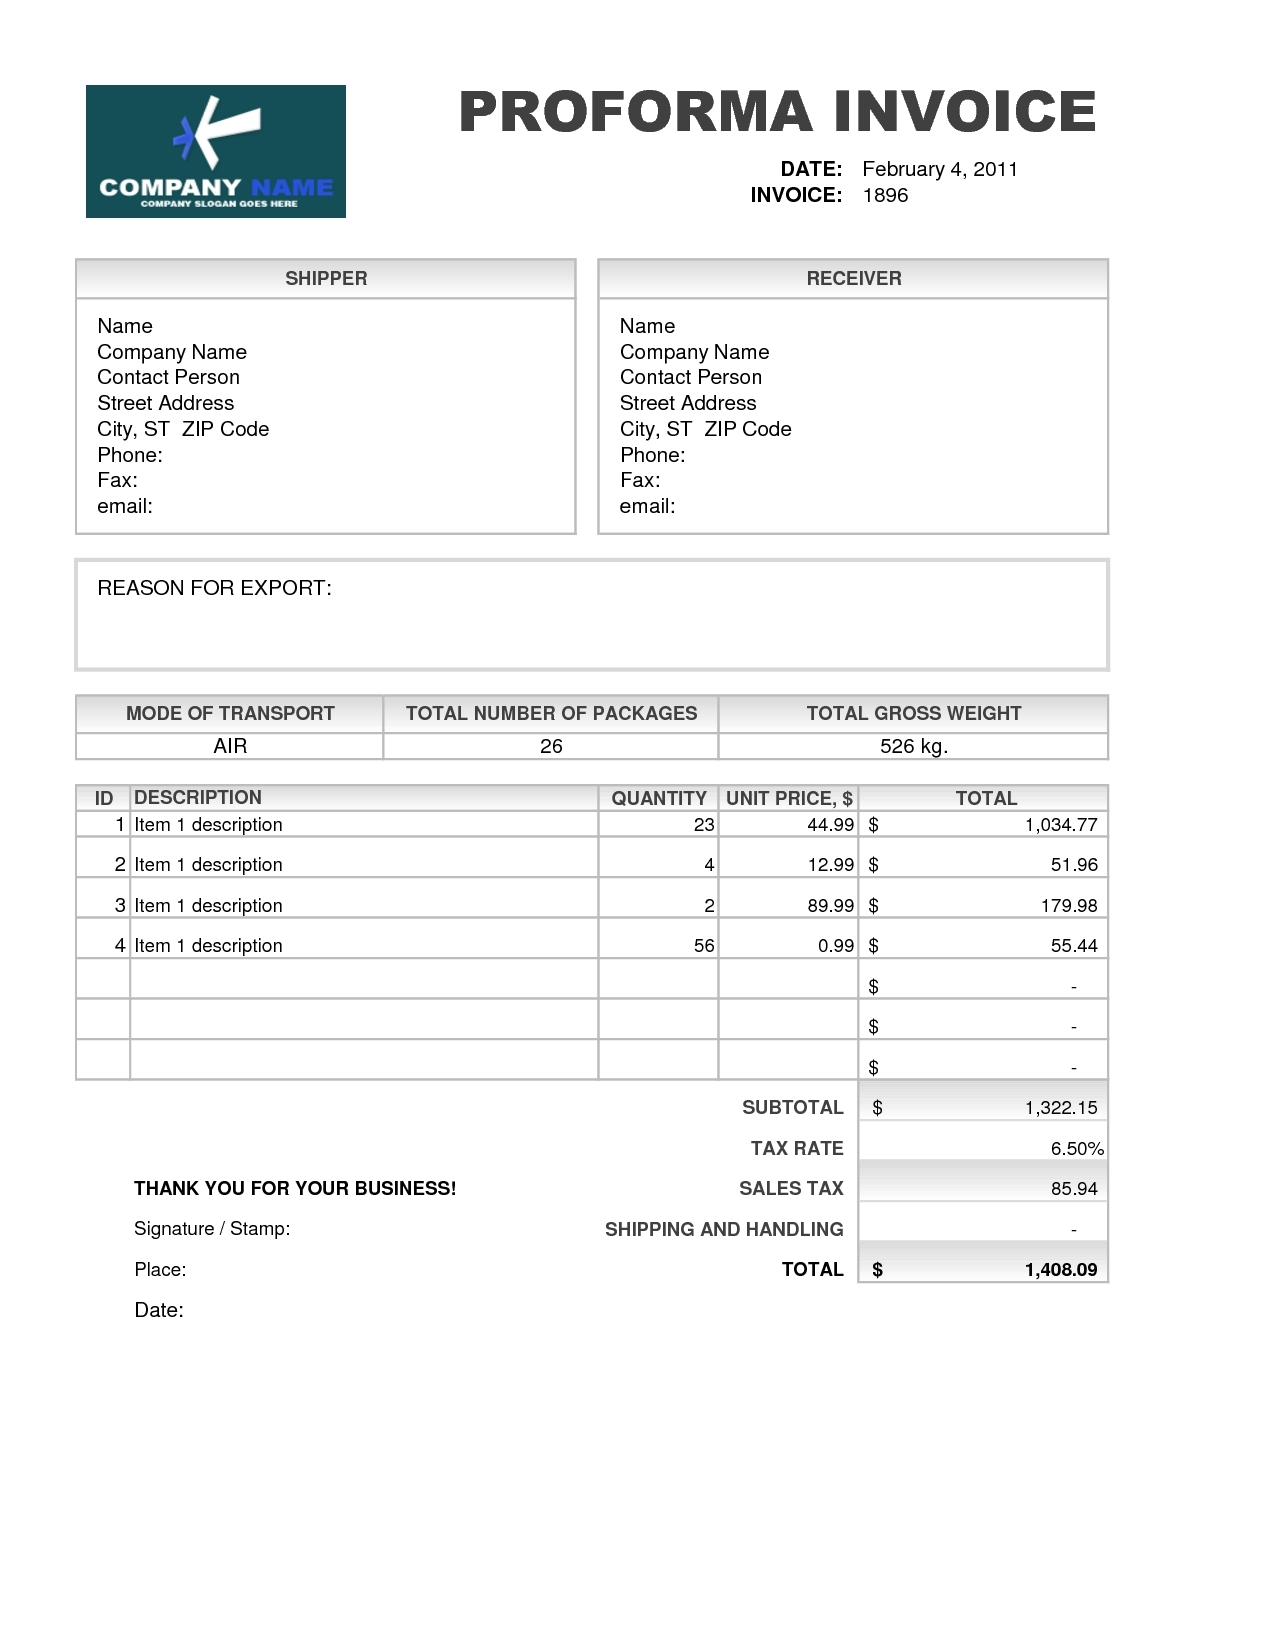 sample of proforma invoice for export invoice template free 2016 template for proforma invoice